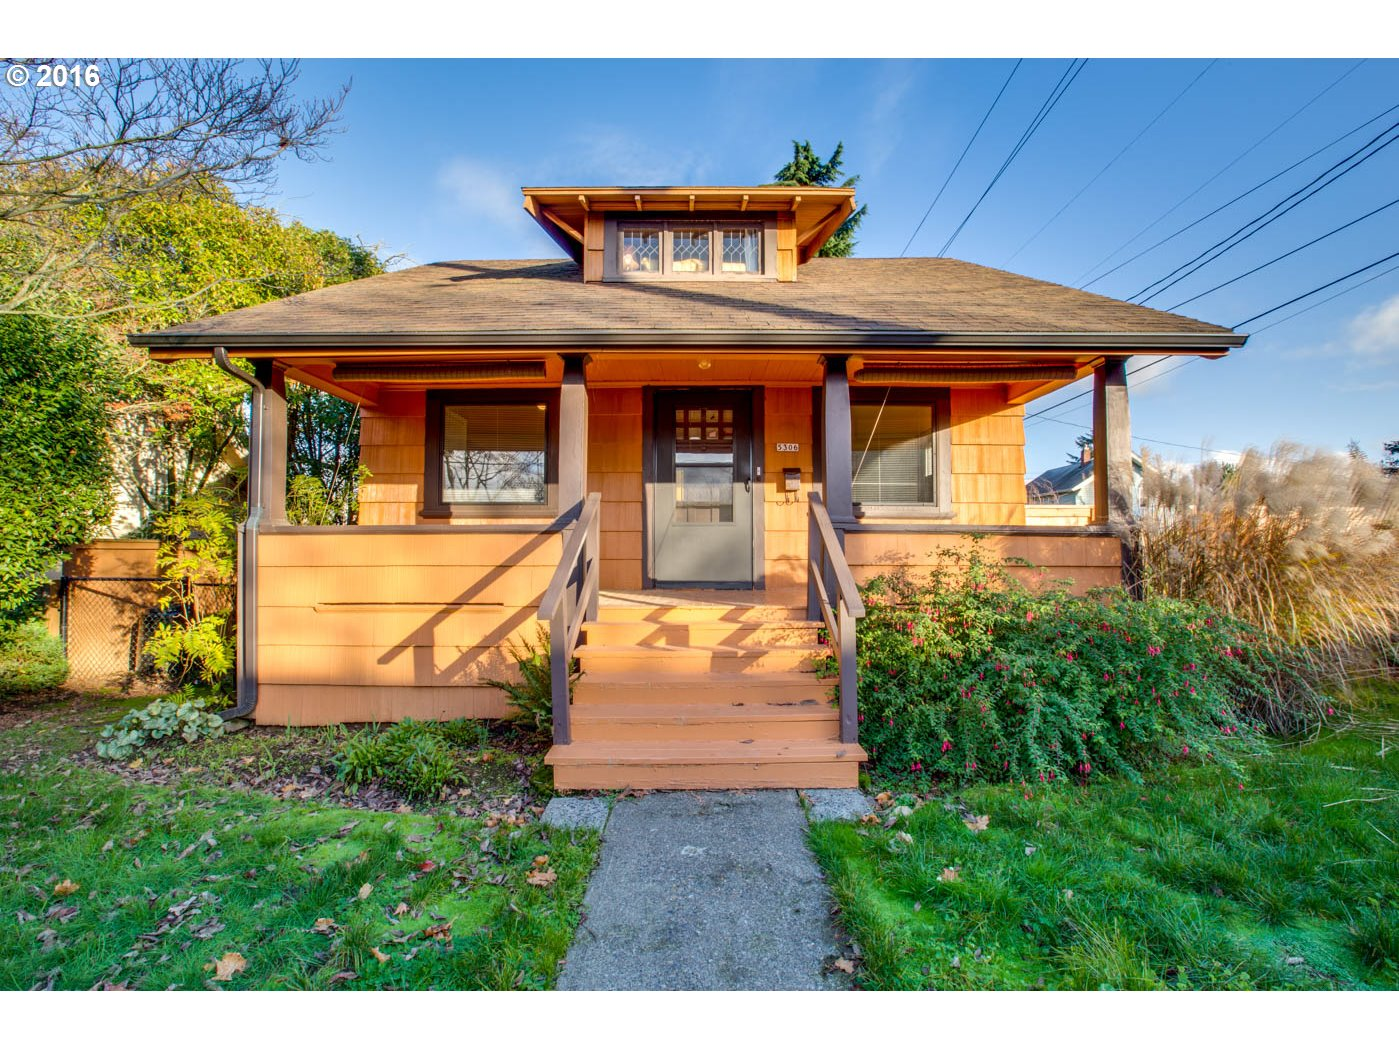 5306 ne 34th ave portland or 97211 mls 16153879 pdx listed